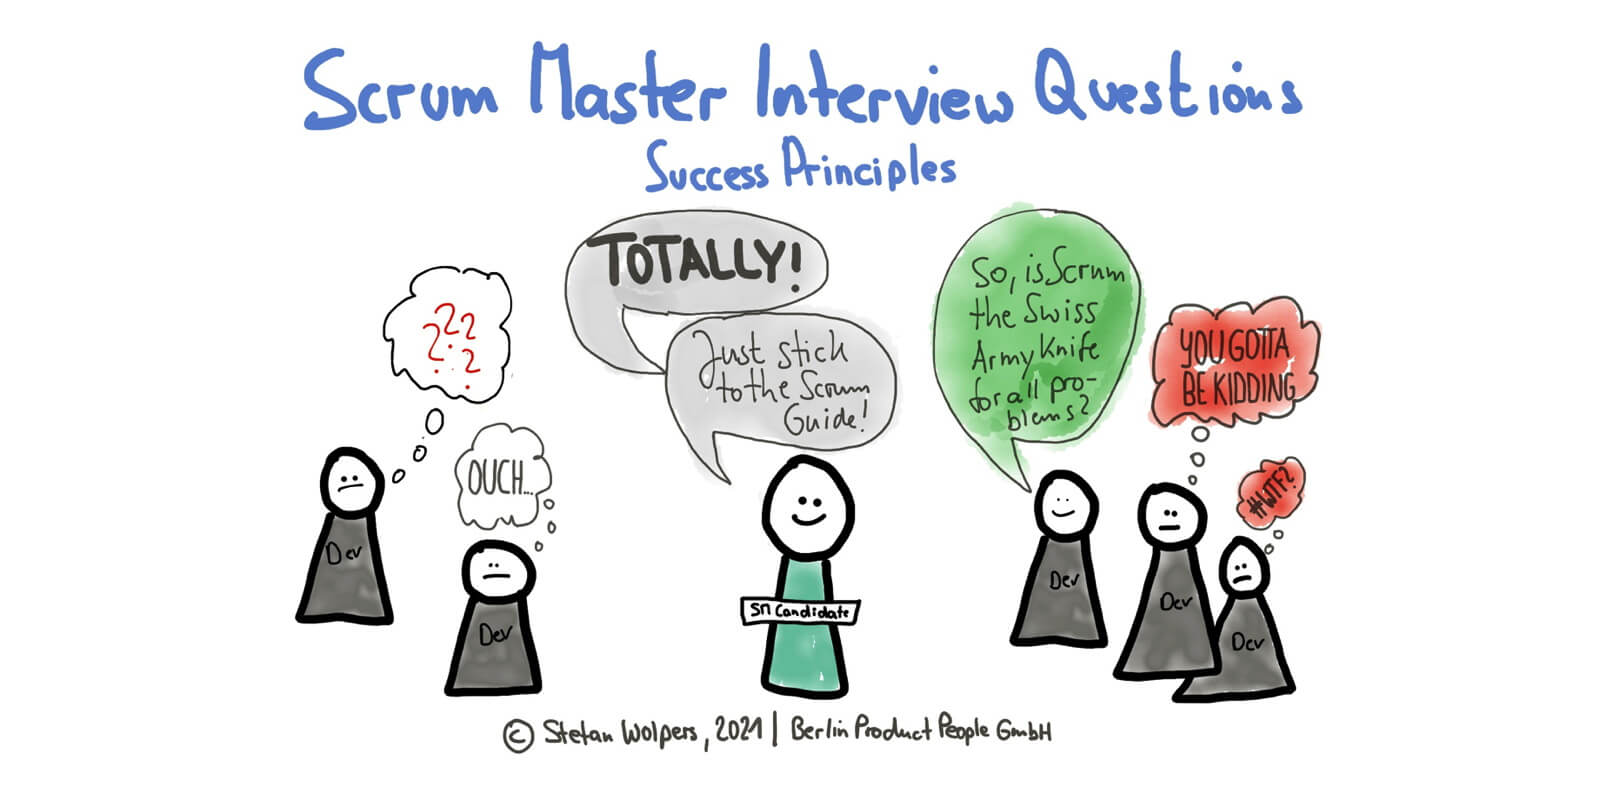 51 Scrum Master Interview Questions (5): Scrum Success Principles and Indicators —Age-of-Product.com